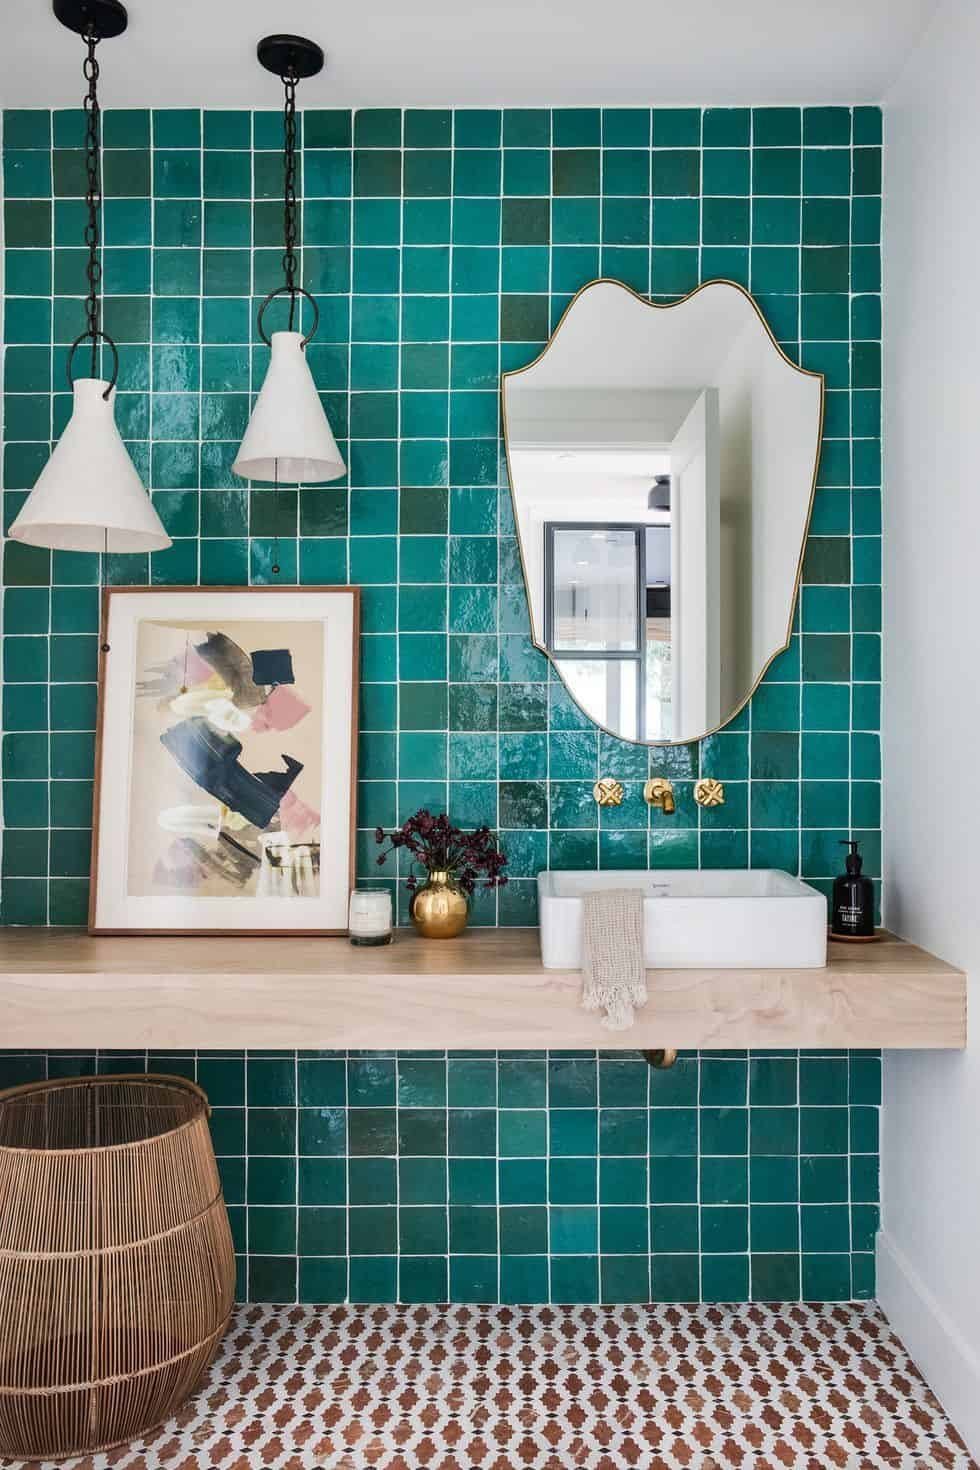 Create Dazzling Bathroom Accent Wall With These 11 Examples